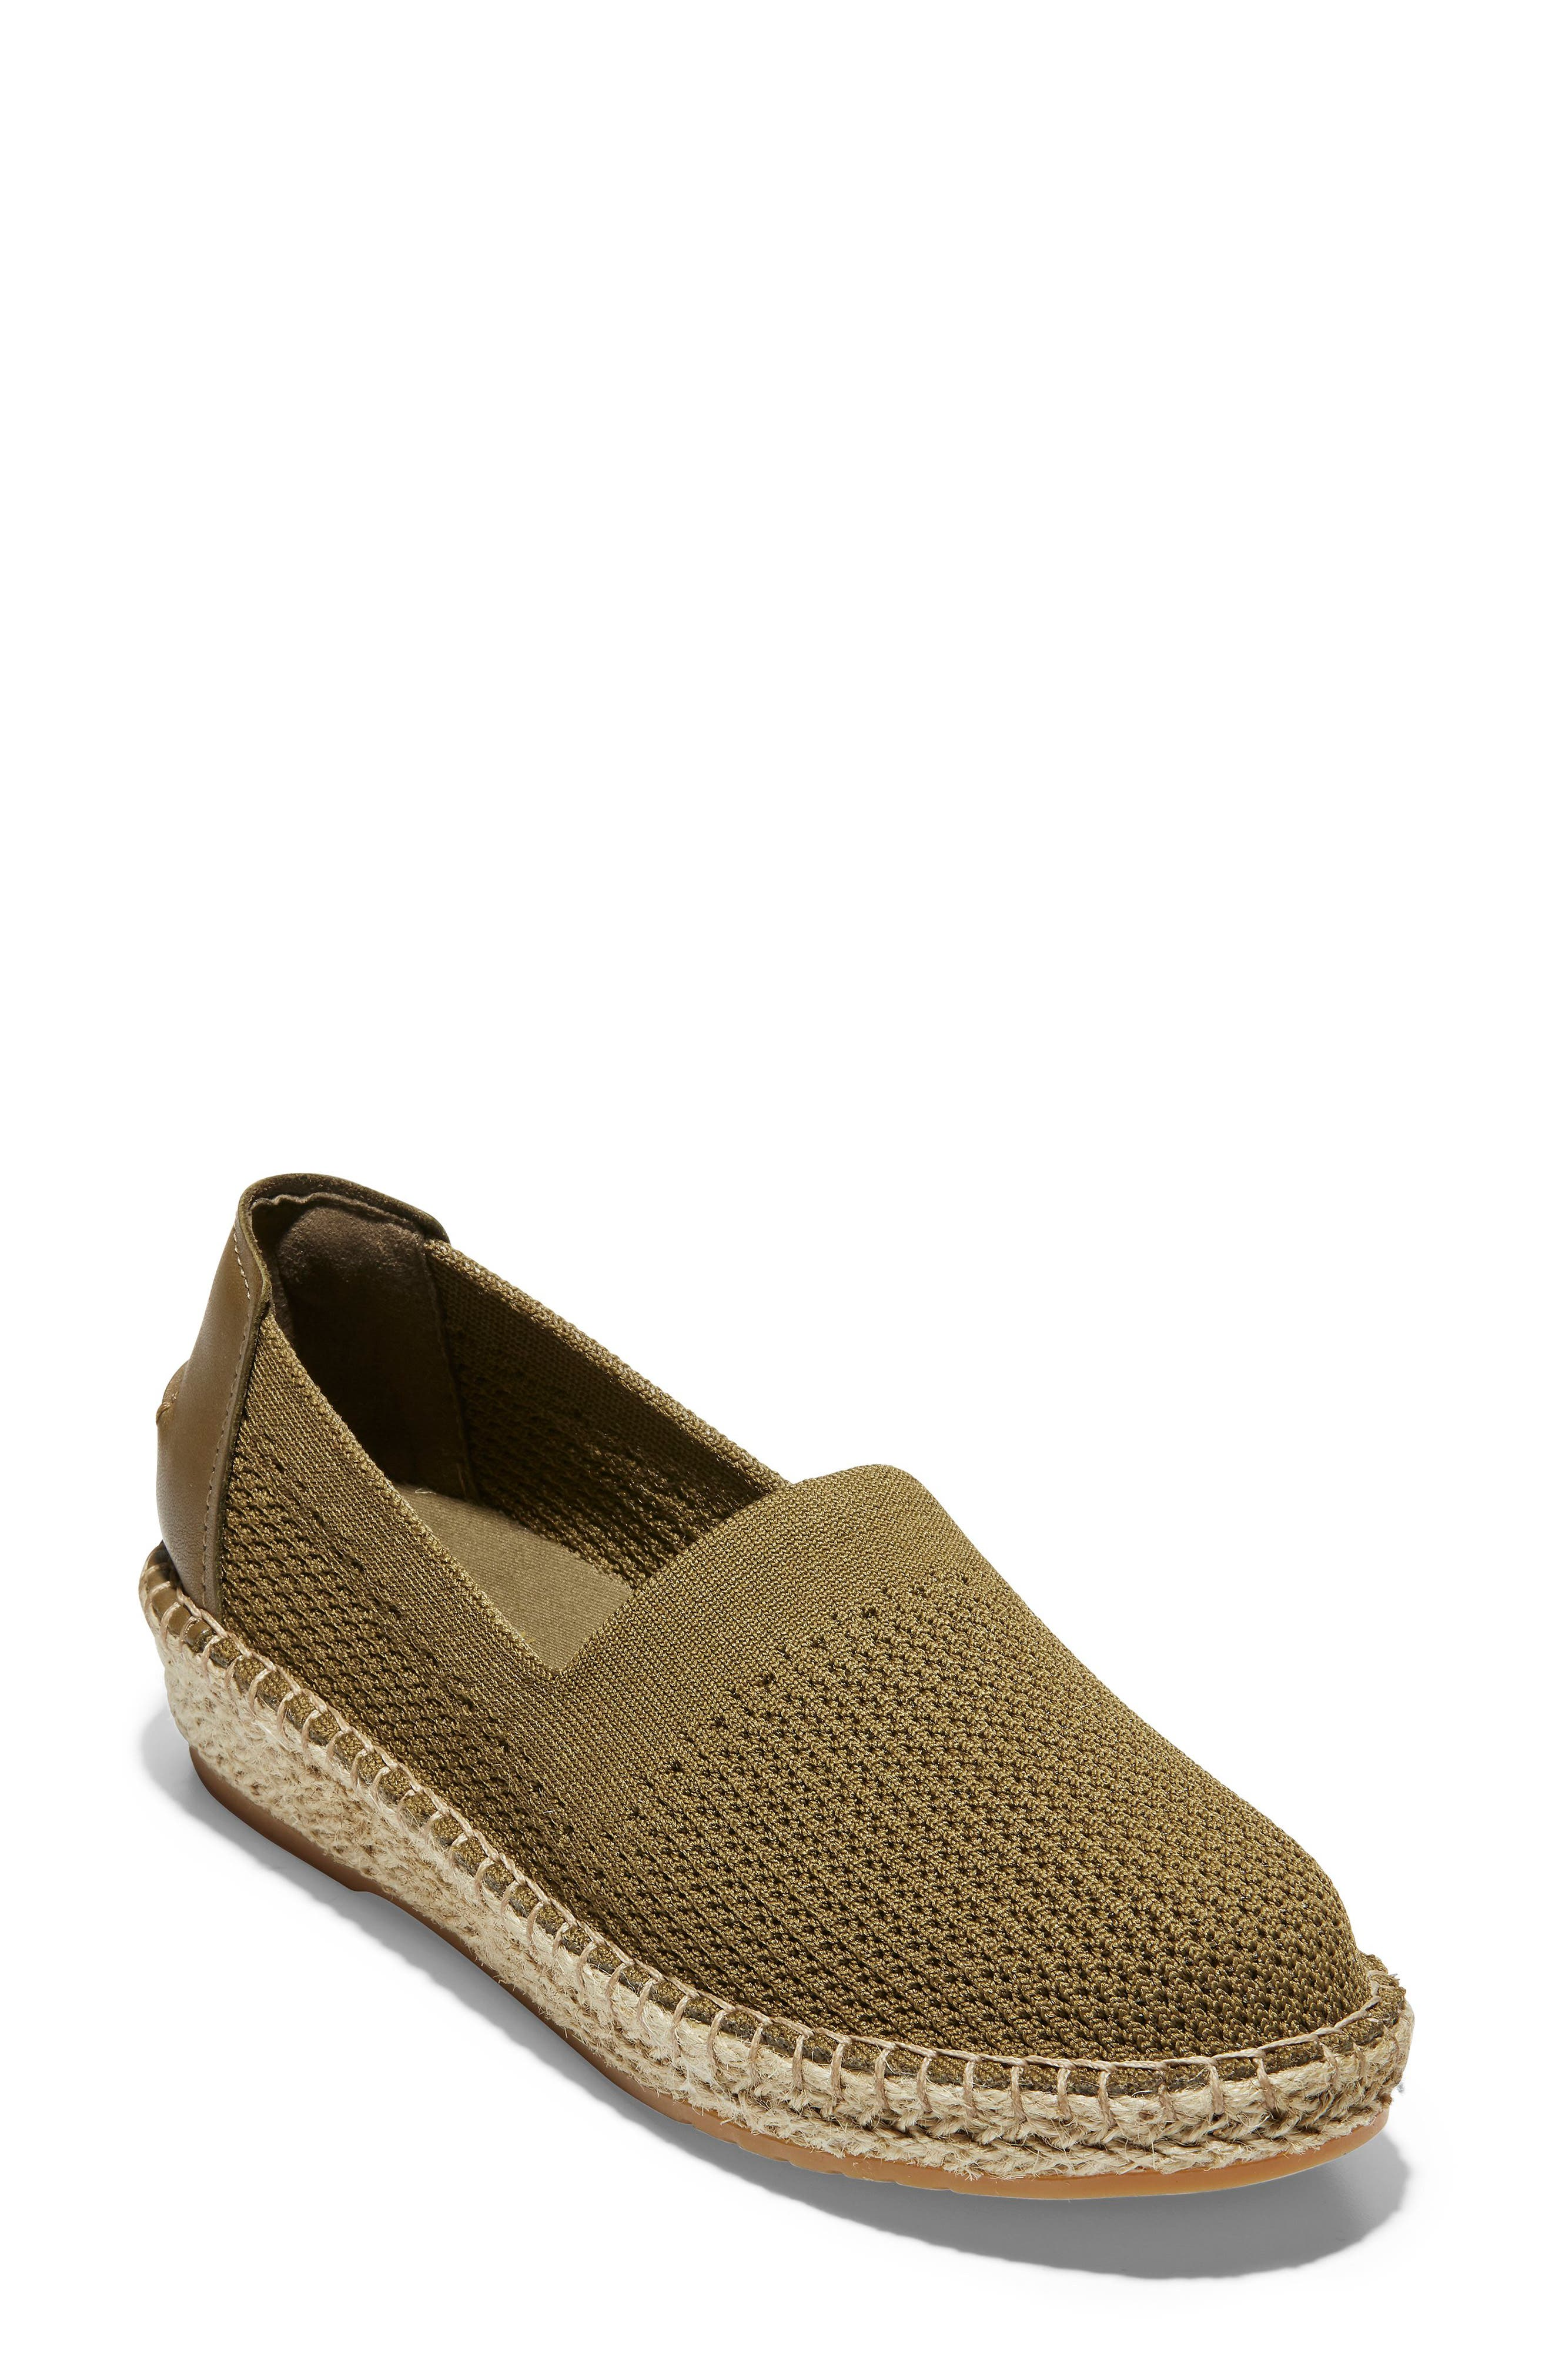 Cole Haan Cloudfeel Stitchlite Espadrille B - Green